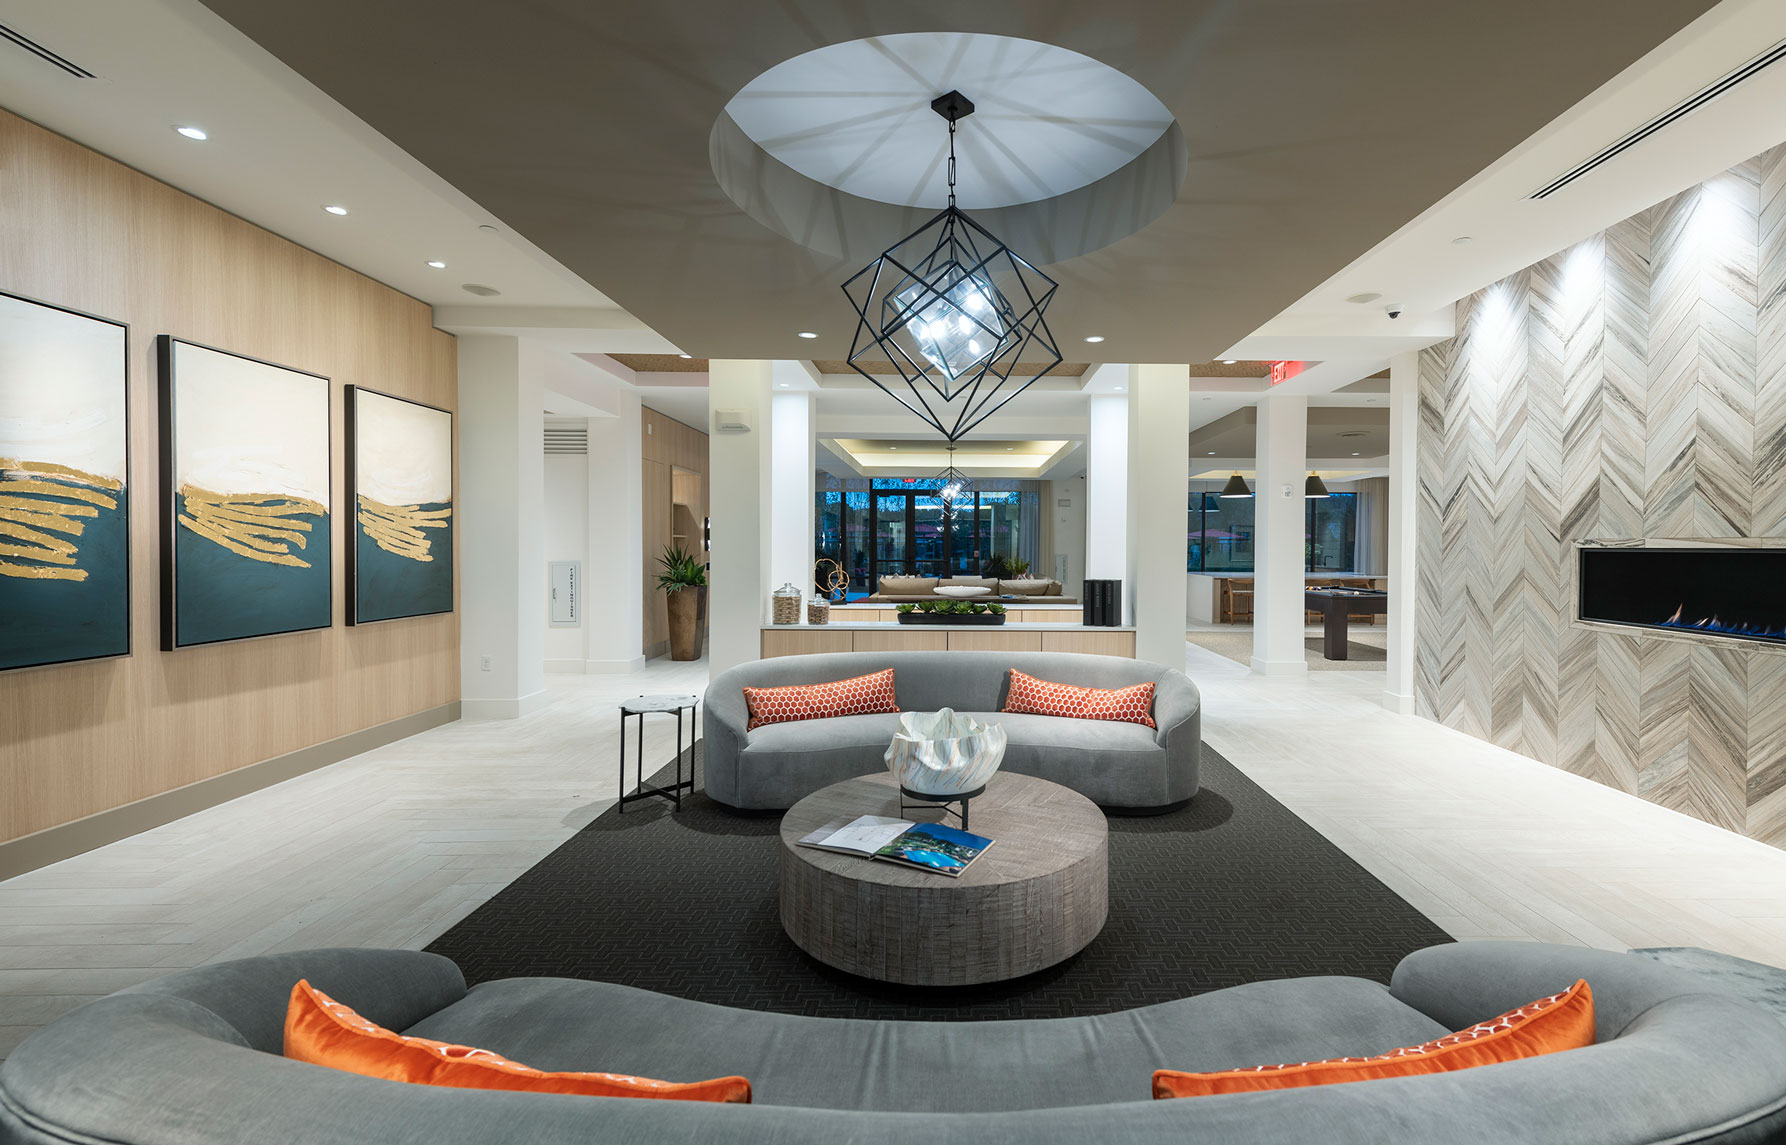 Clubhouse with designer modern furniture, designer lighting, fireplace and welcome desk